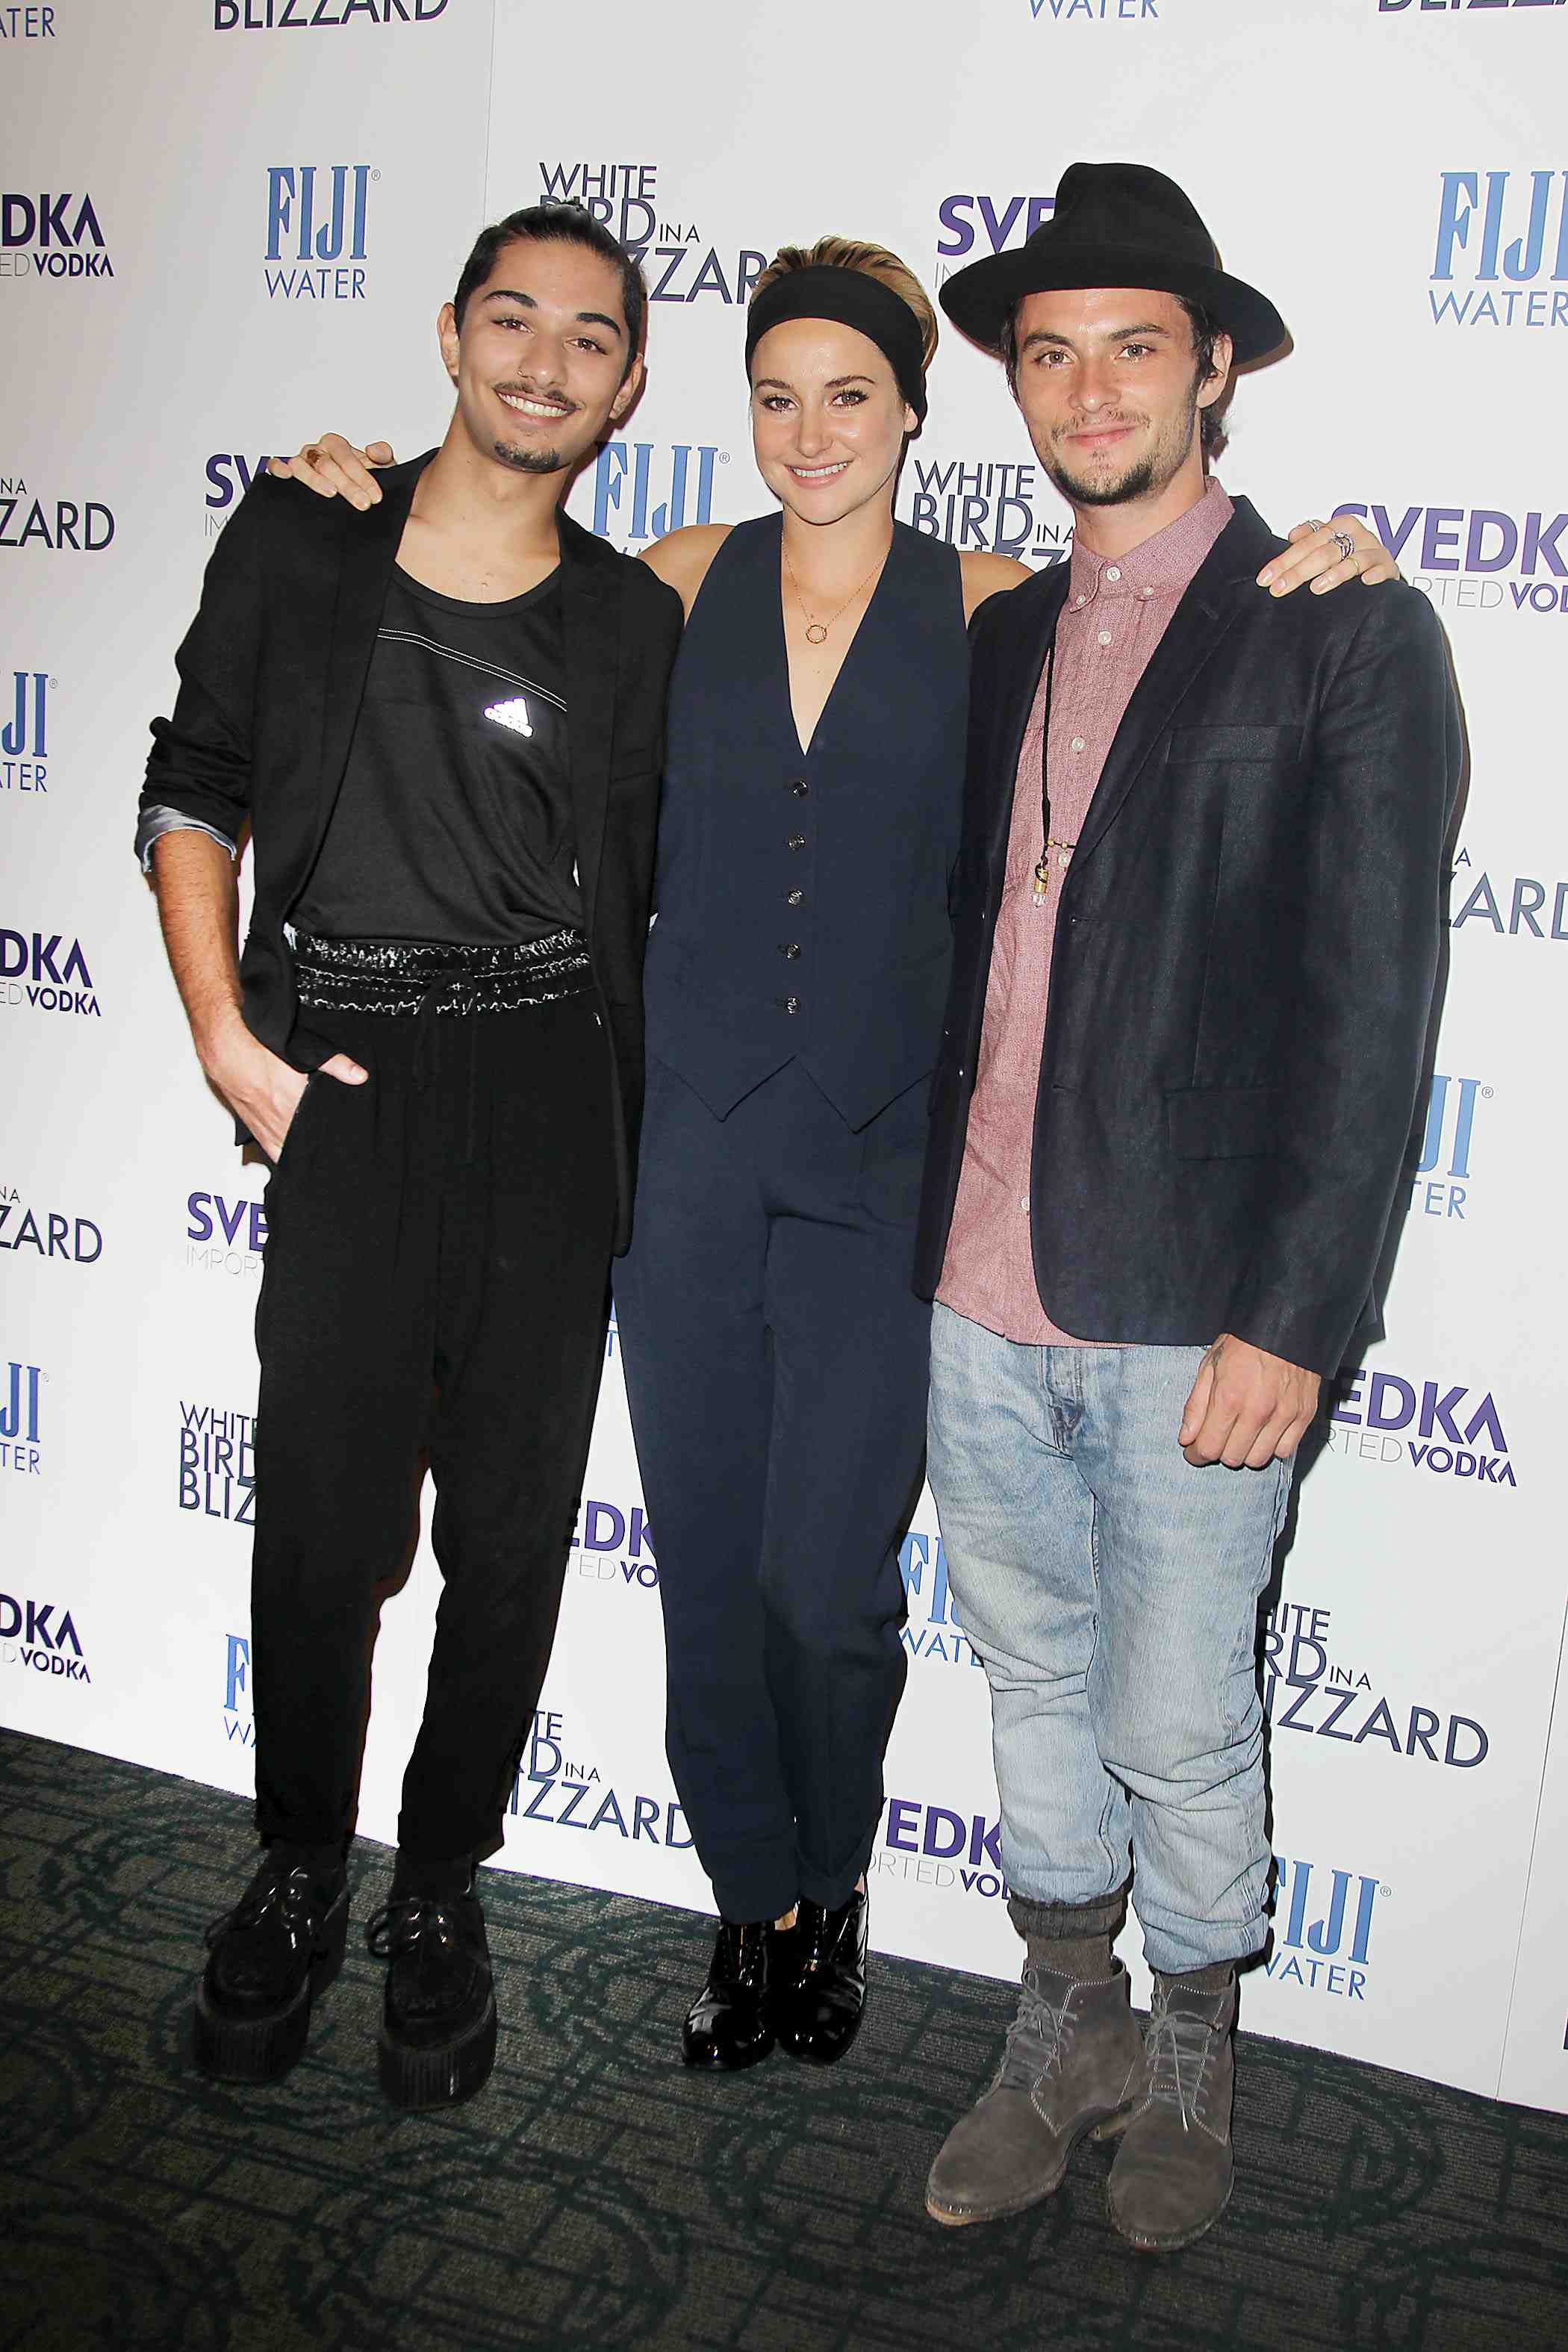 Mark Indelicato, Shailene Woodley and Shiloh Fernandez at an after-party, presented by FIJI Water and SVEDKA Vodka, for a special New York screening of Magnolia Pictures'  White Bird In a Blizzard on Oct. 15 at Louie & Chan. (Amanda Schwab/Starpix)